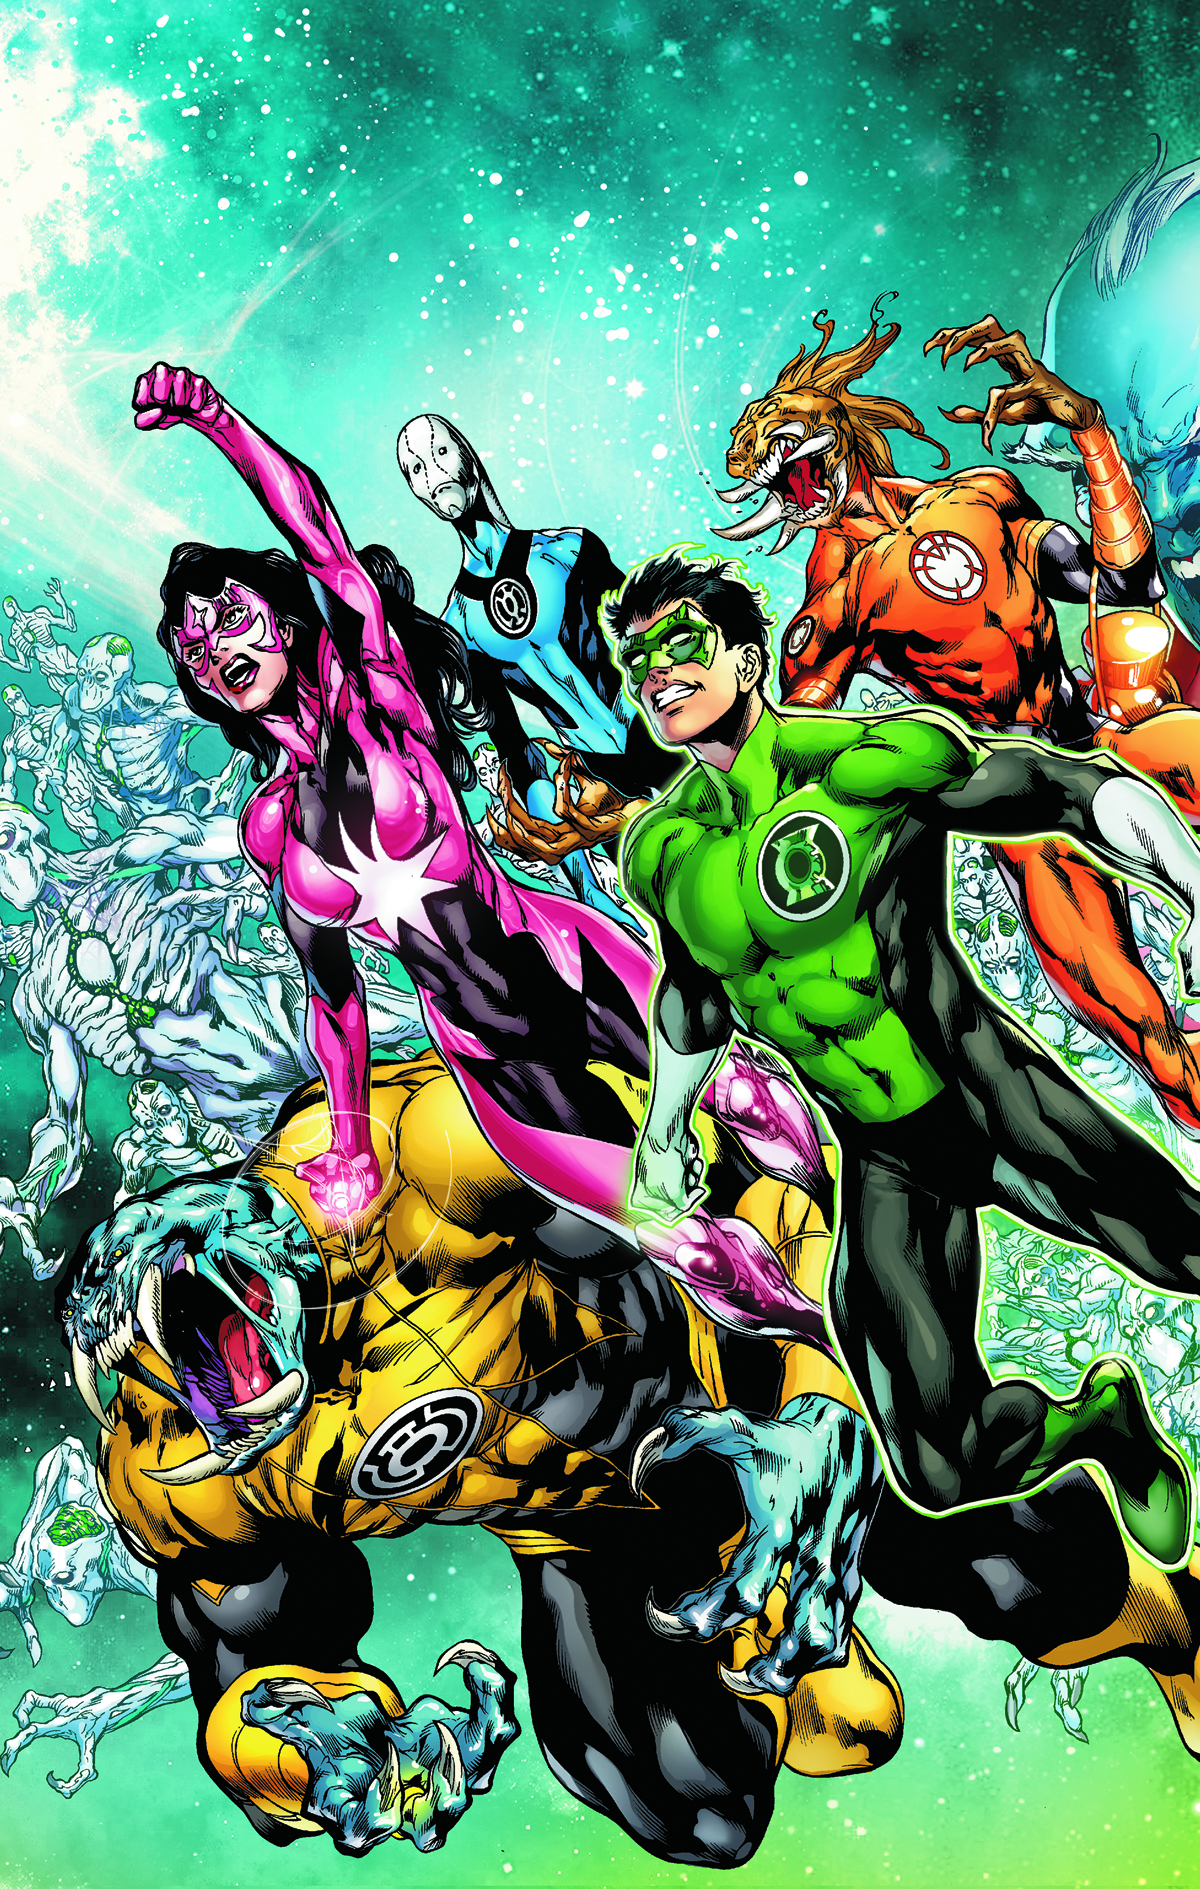 GREEN LANTERN NEW GUARDIANS #13 (RISE)